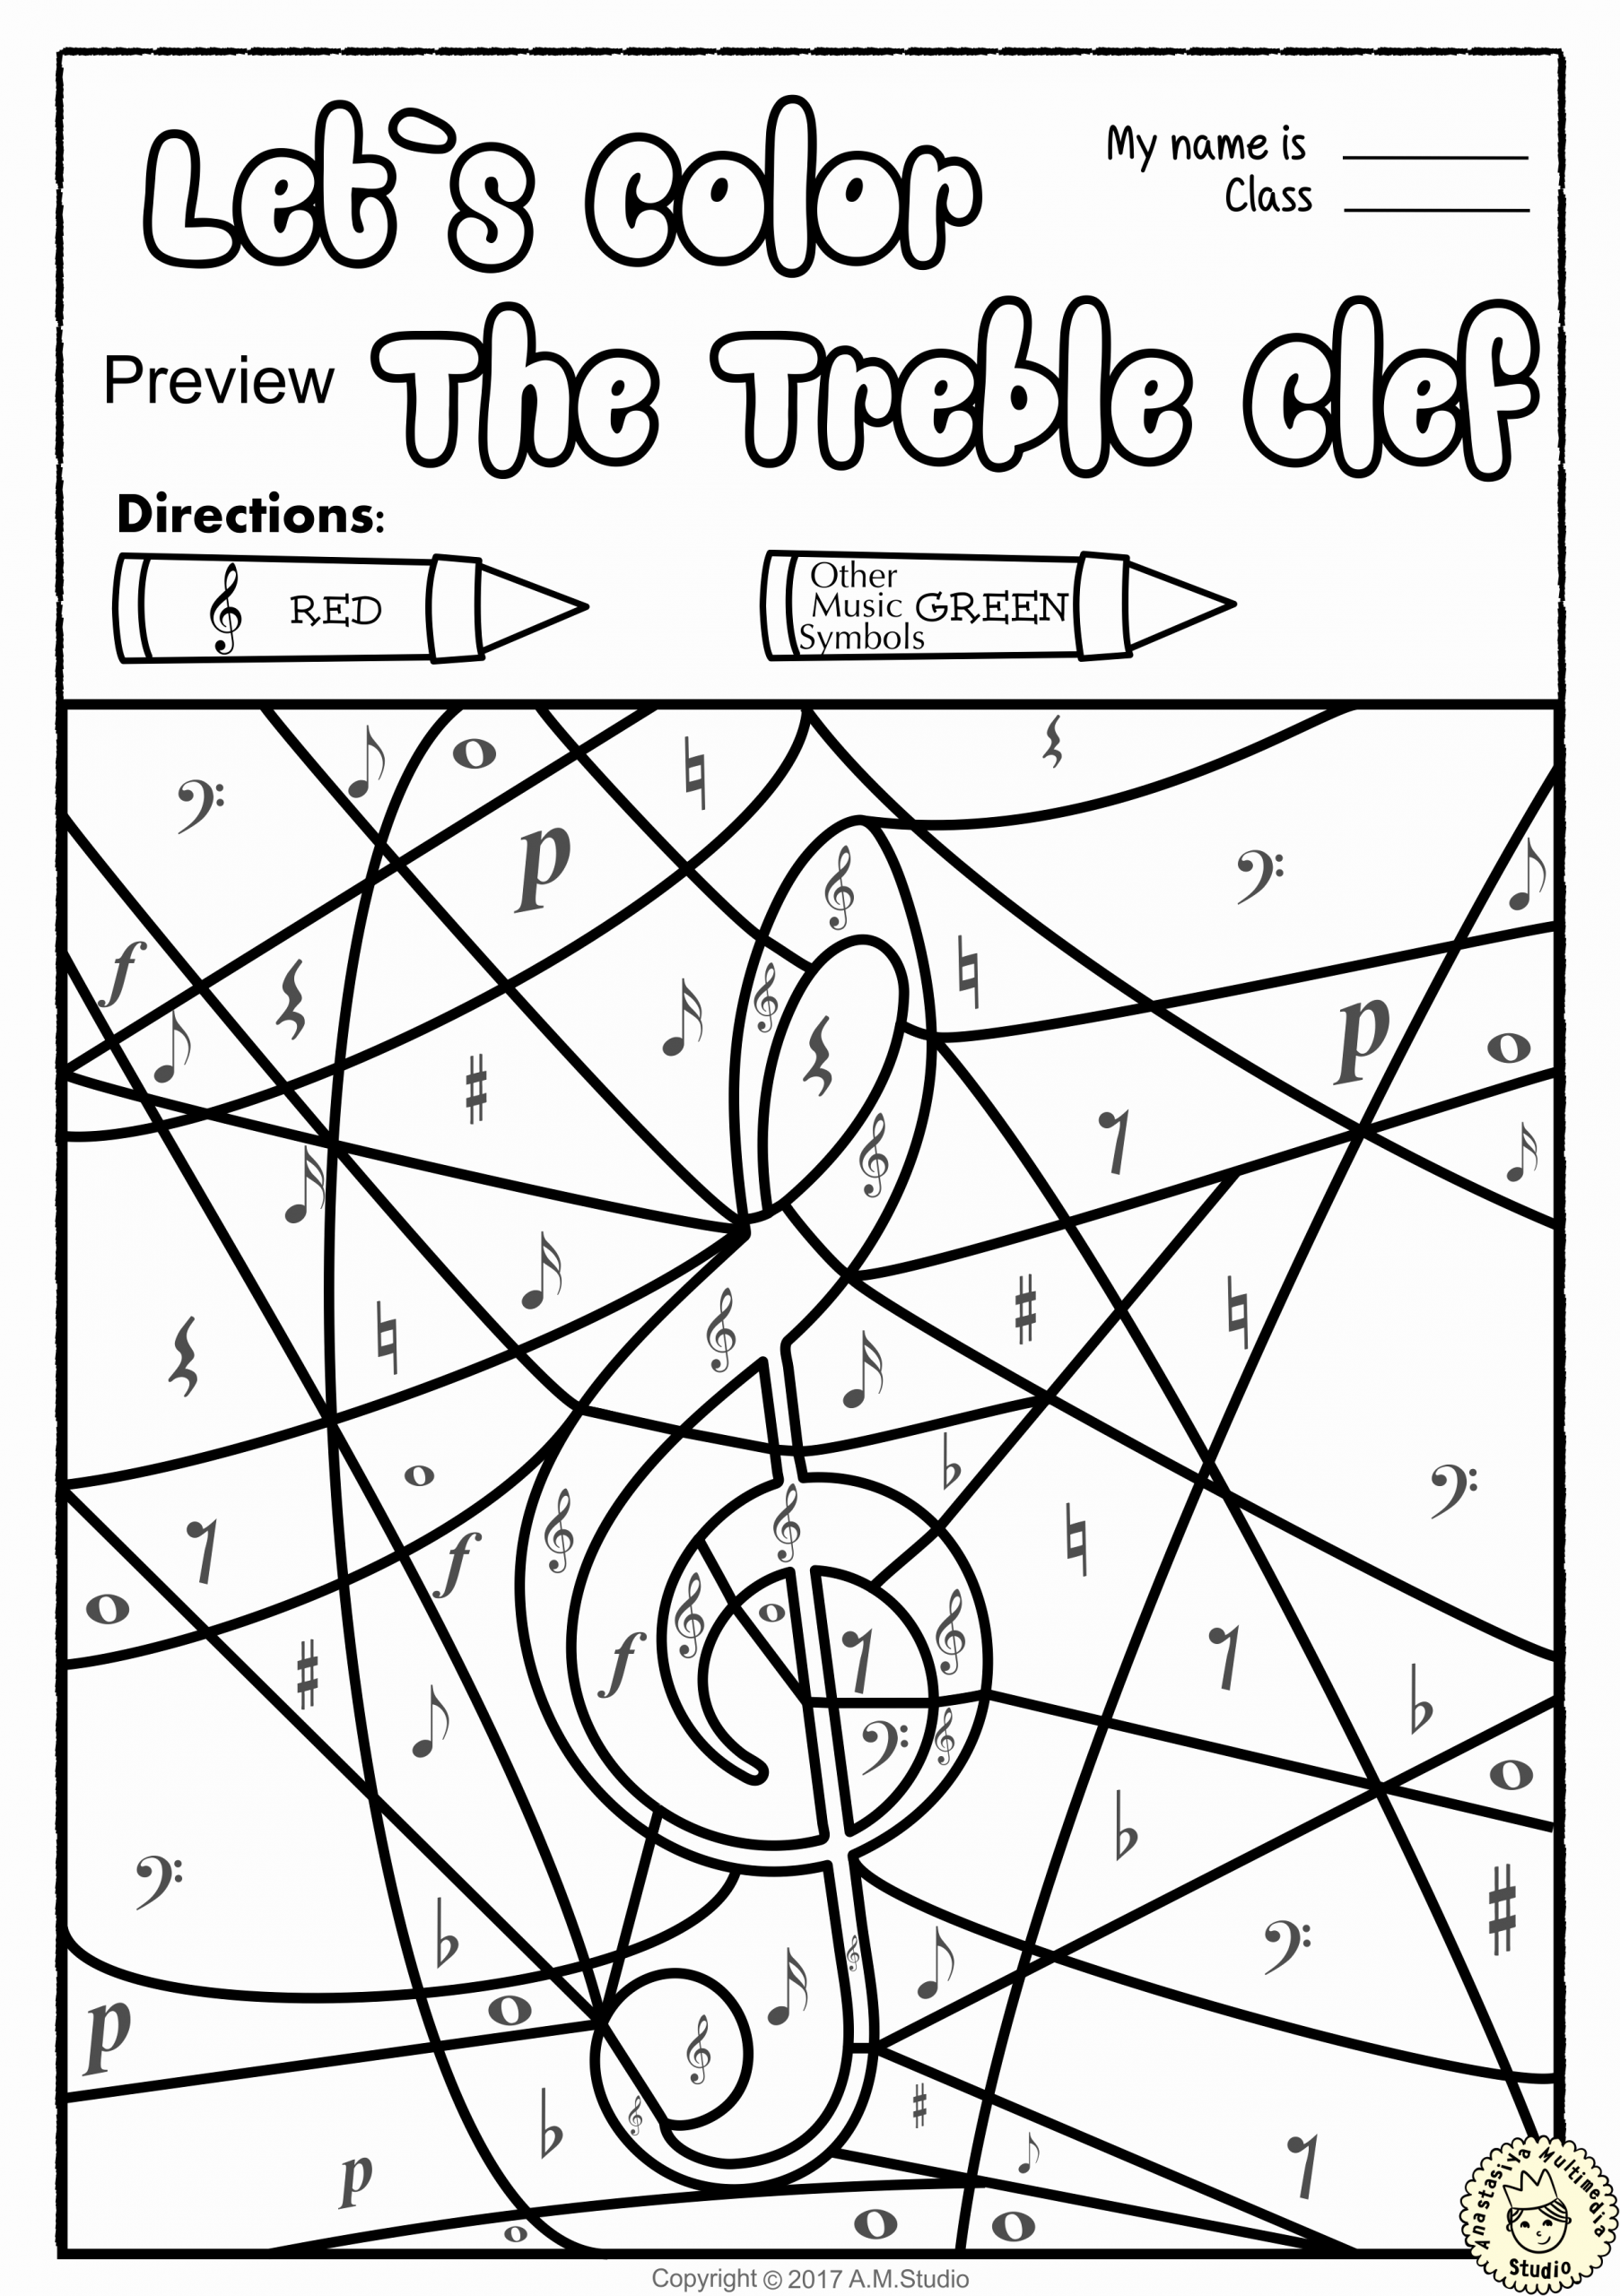 Piano Worksheets for Kids Beautiful Let S Learn the Music Symbols